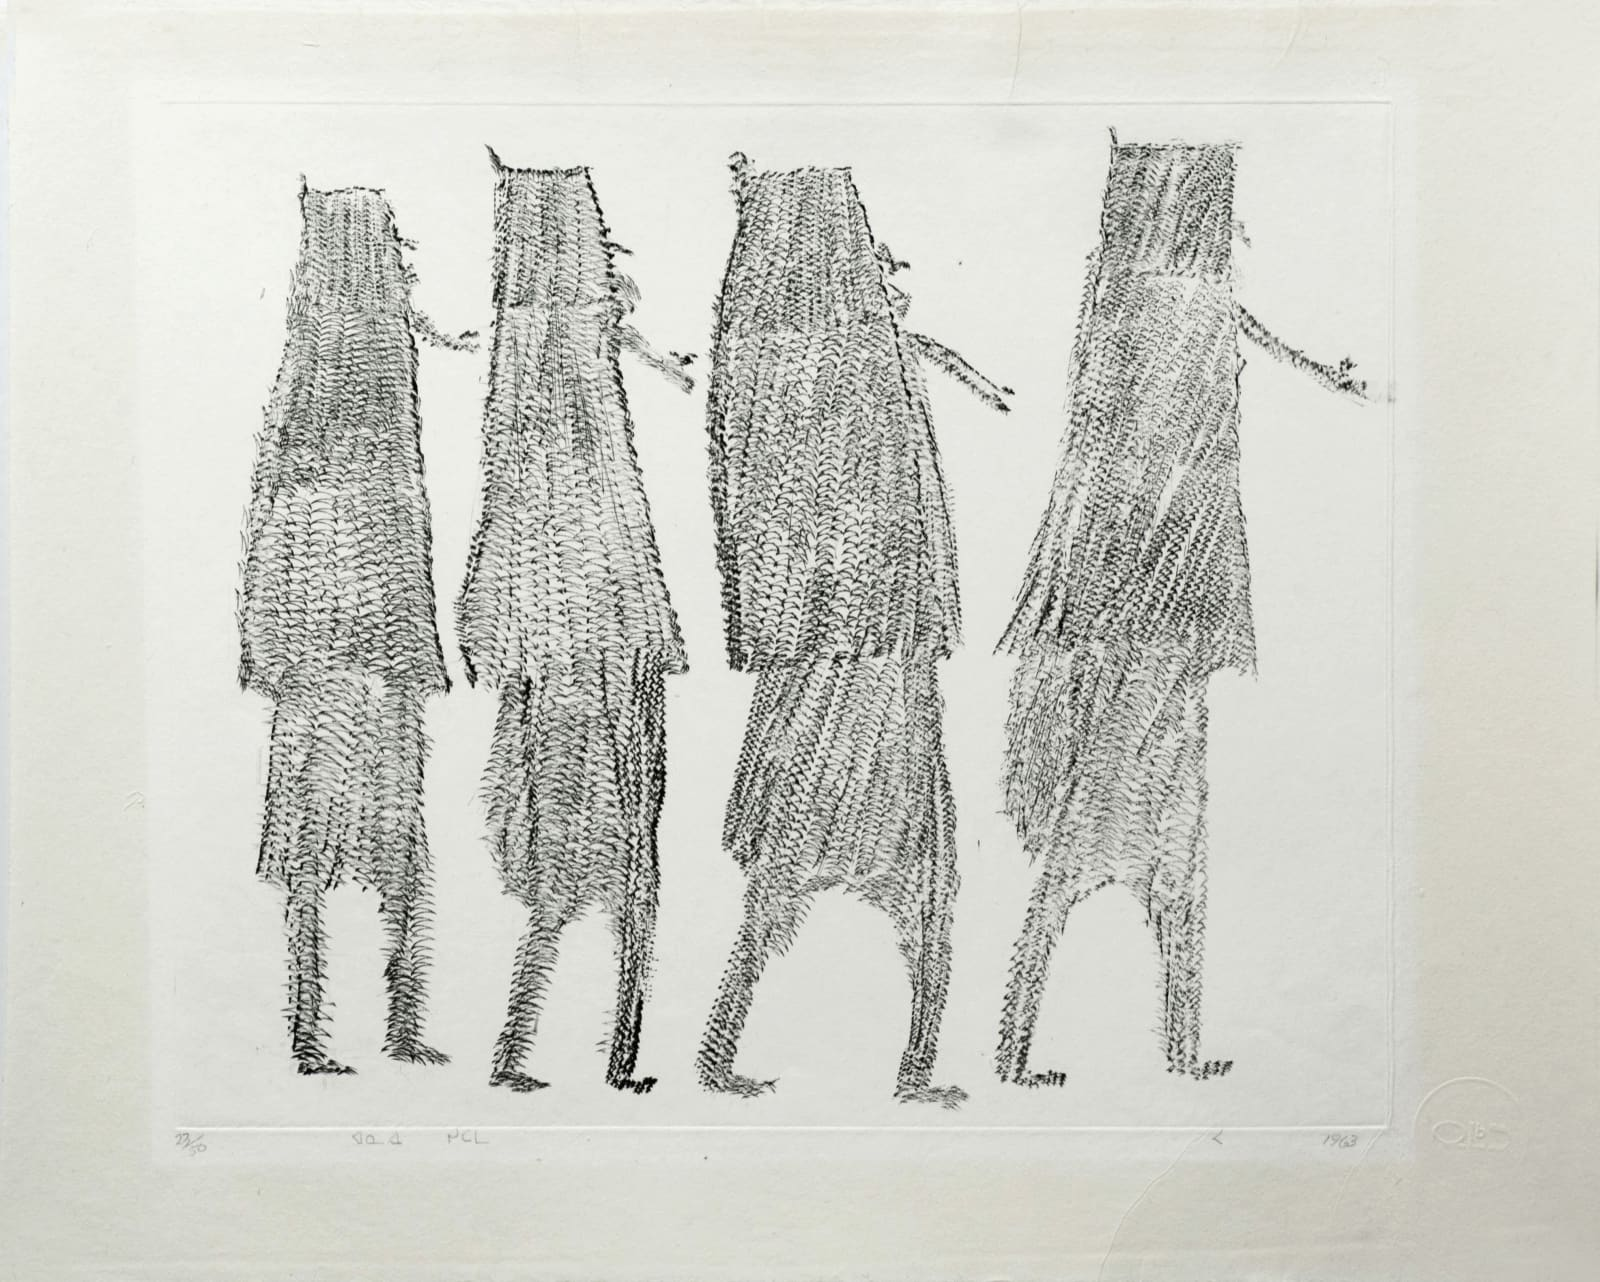 PARR (1893-1969) KINNGAIT (CAPE DORSET) Four Women, 1963 #39 engraving plate: 9.75 x 11.75 in (24.8 x 29.8 cm) sheet: 12.5 x 15.25 in (31.8 x 38.7 cm) $1,200